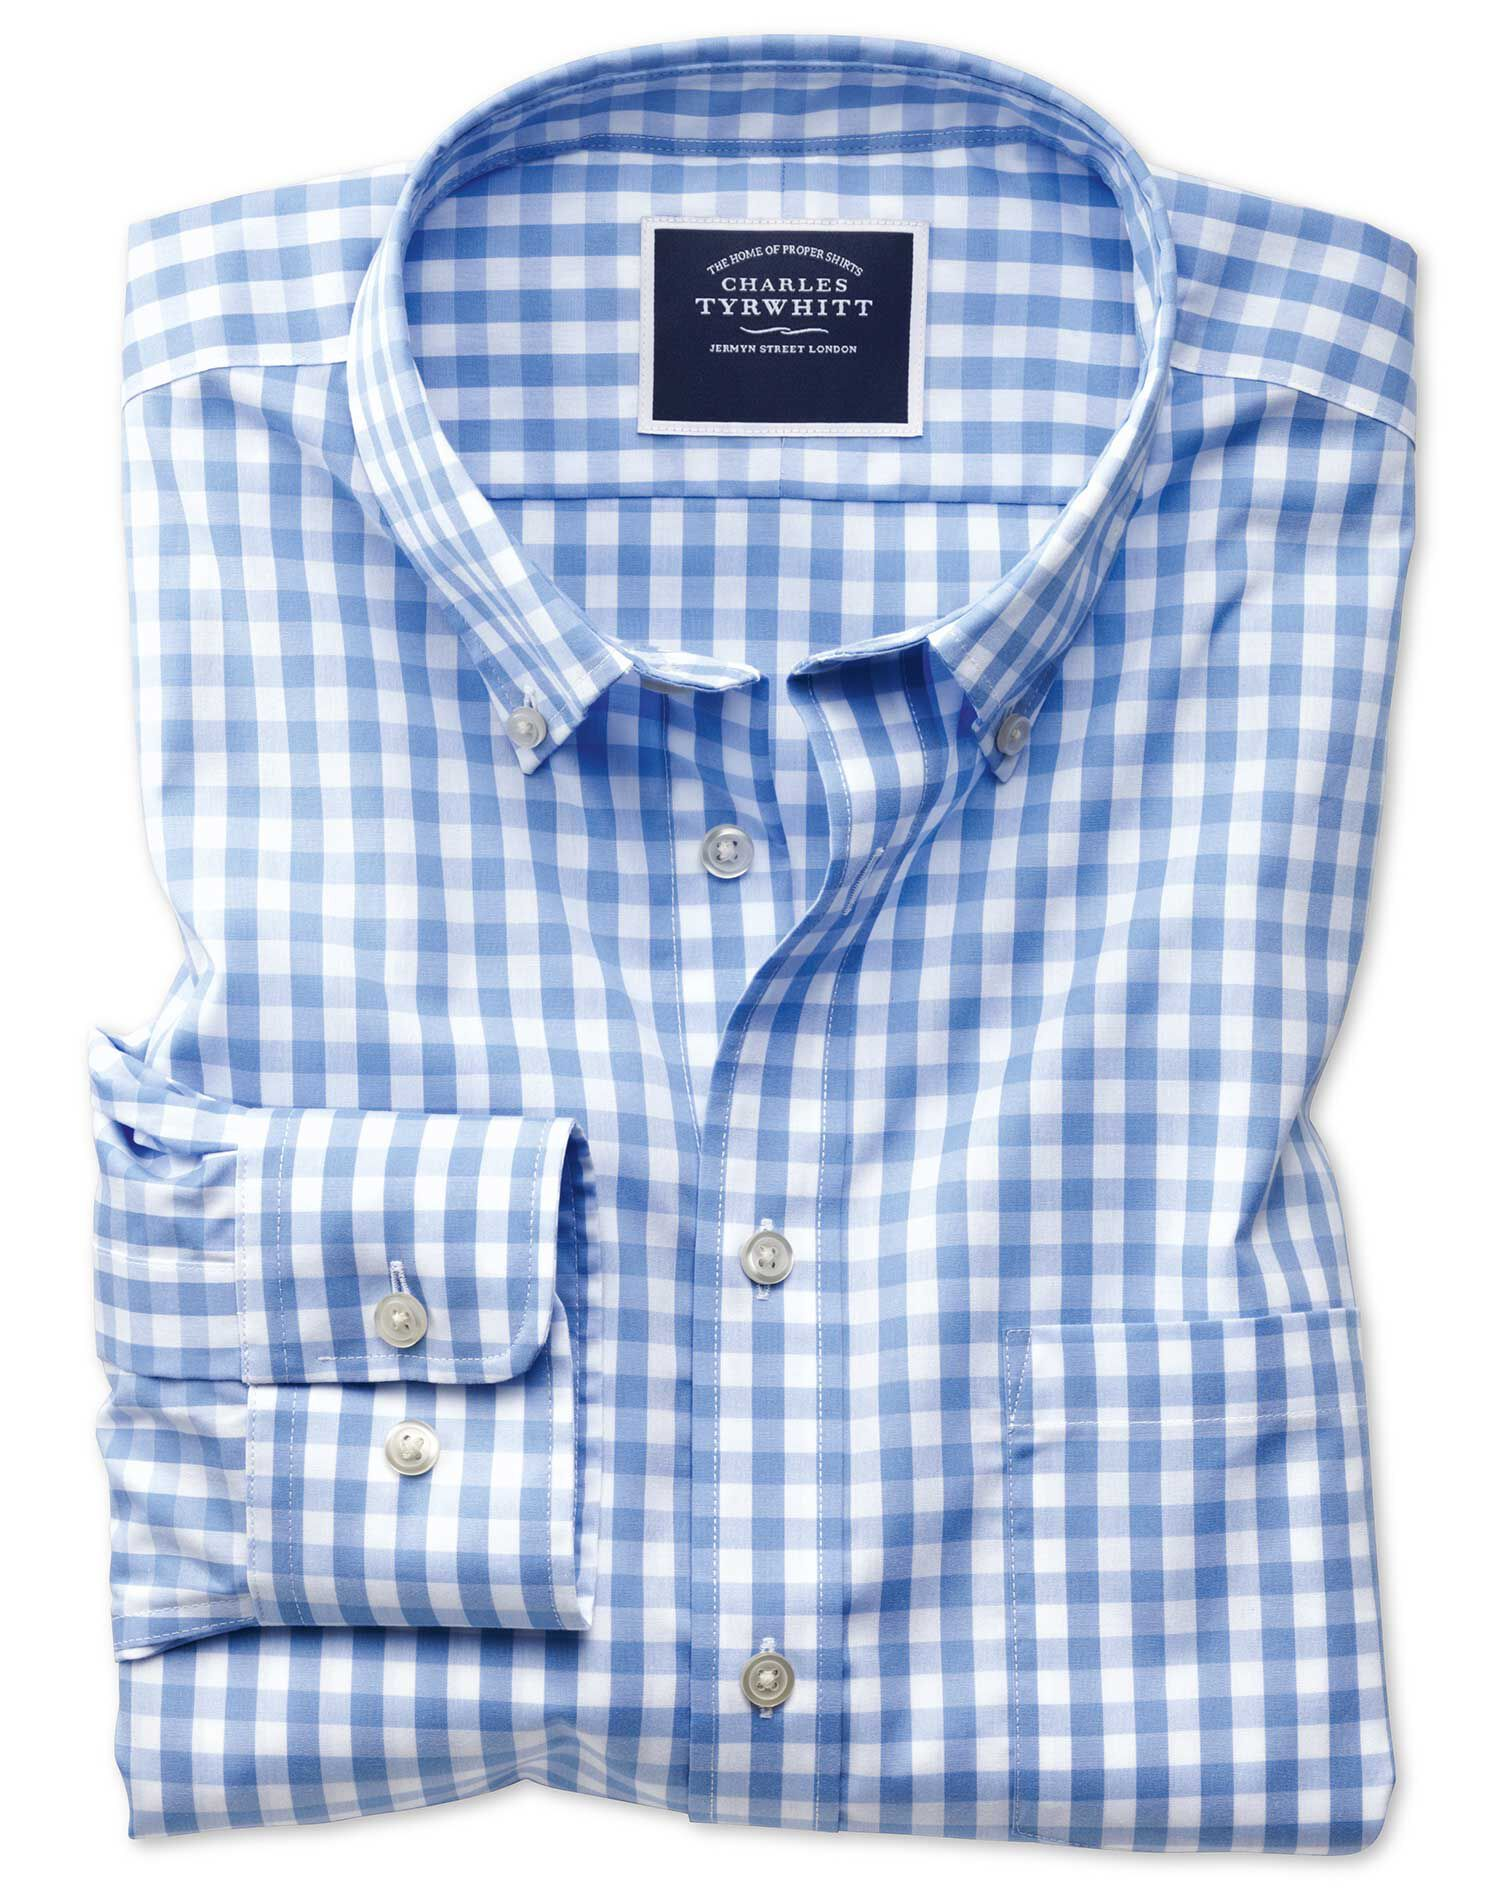 Extra Slim Fit Non-Iron Poplin Sky Blue Gingham Cotton Shirt Single Cuff Size XXL by Charles Tyrwhit